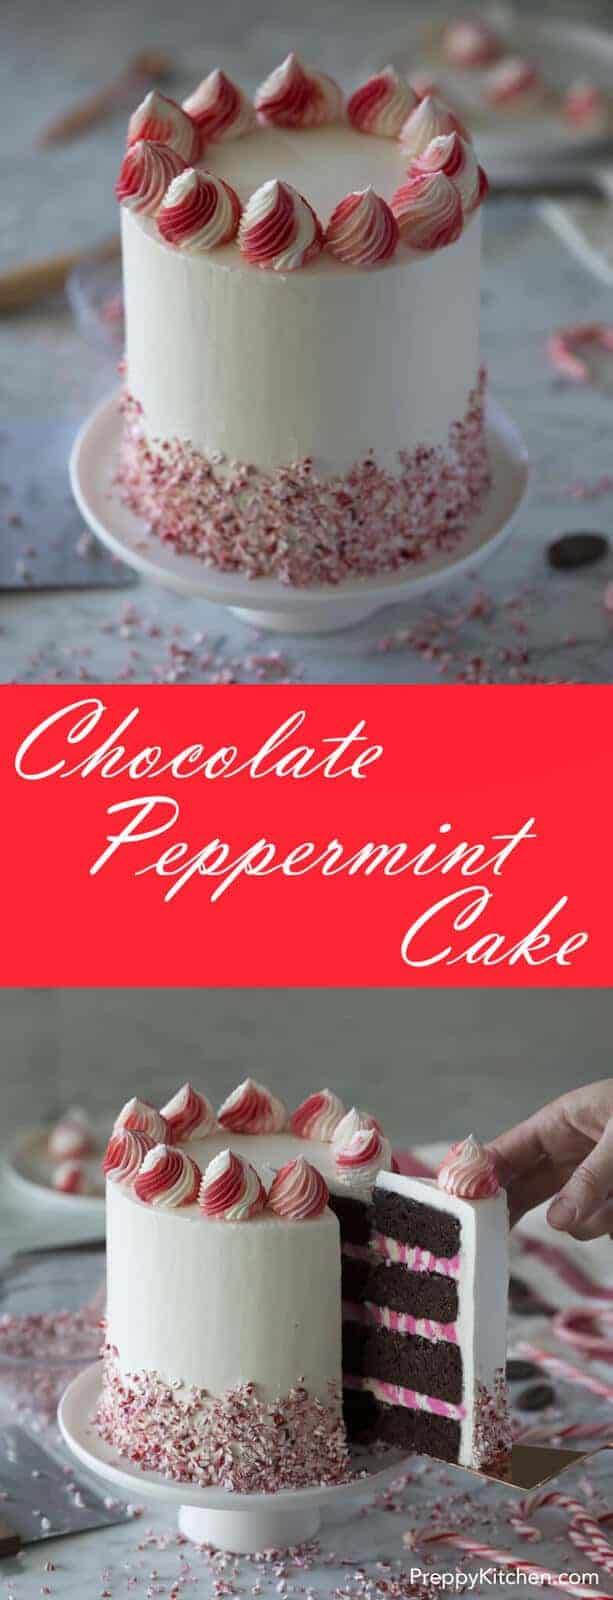 A rich chocolate peppermint cake with a kiss of peppermint, a white chocolate peppermint buttercream filling, crushed peppermint and a silky Italian buttercream all over.